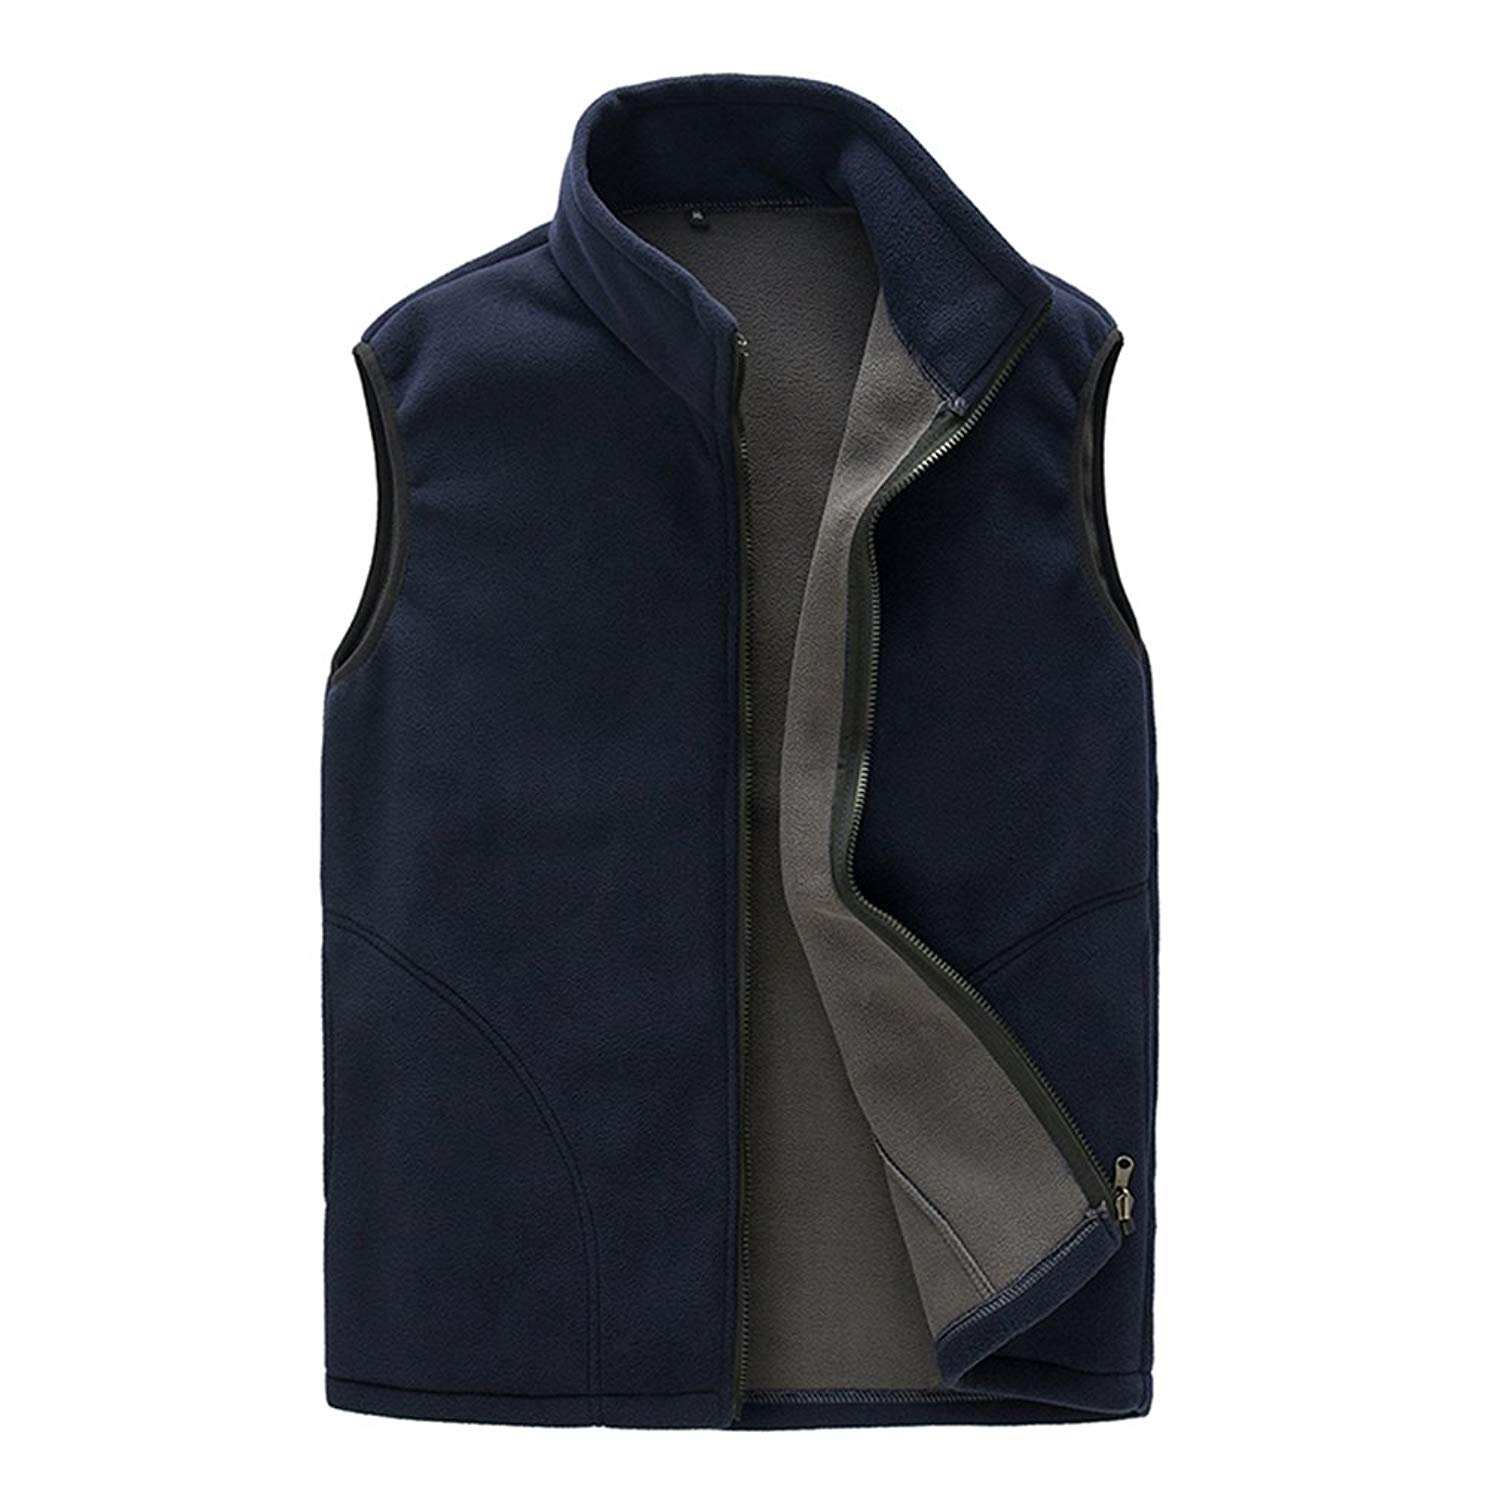 BOSOZOKU Mens Thermal Fleece Vest, Full Zip Gilet Sleeveless Casual Bodywarmer Waistcoat Outdoor Fleece Jacket